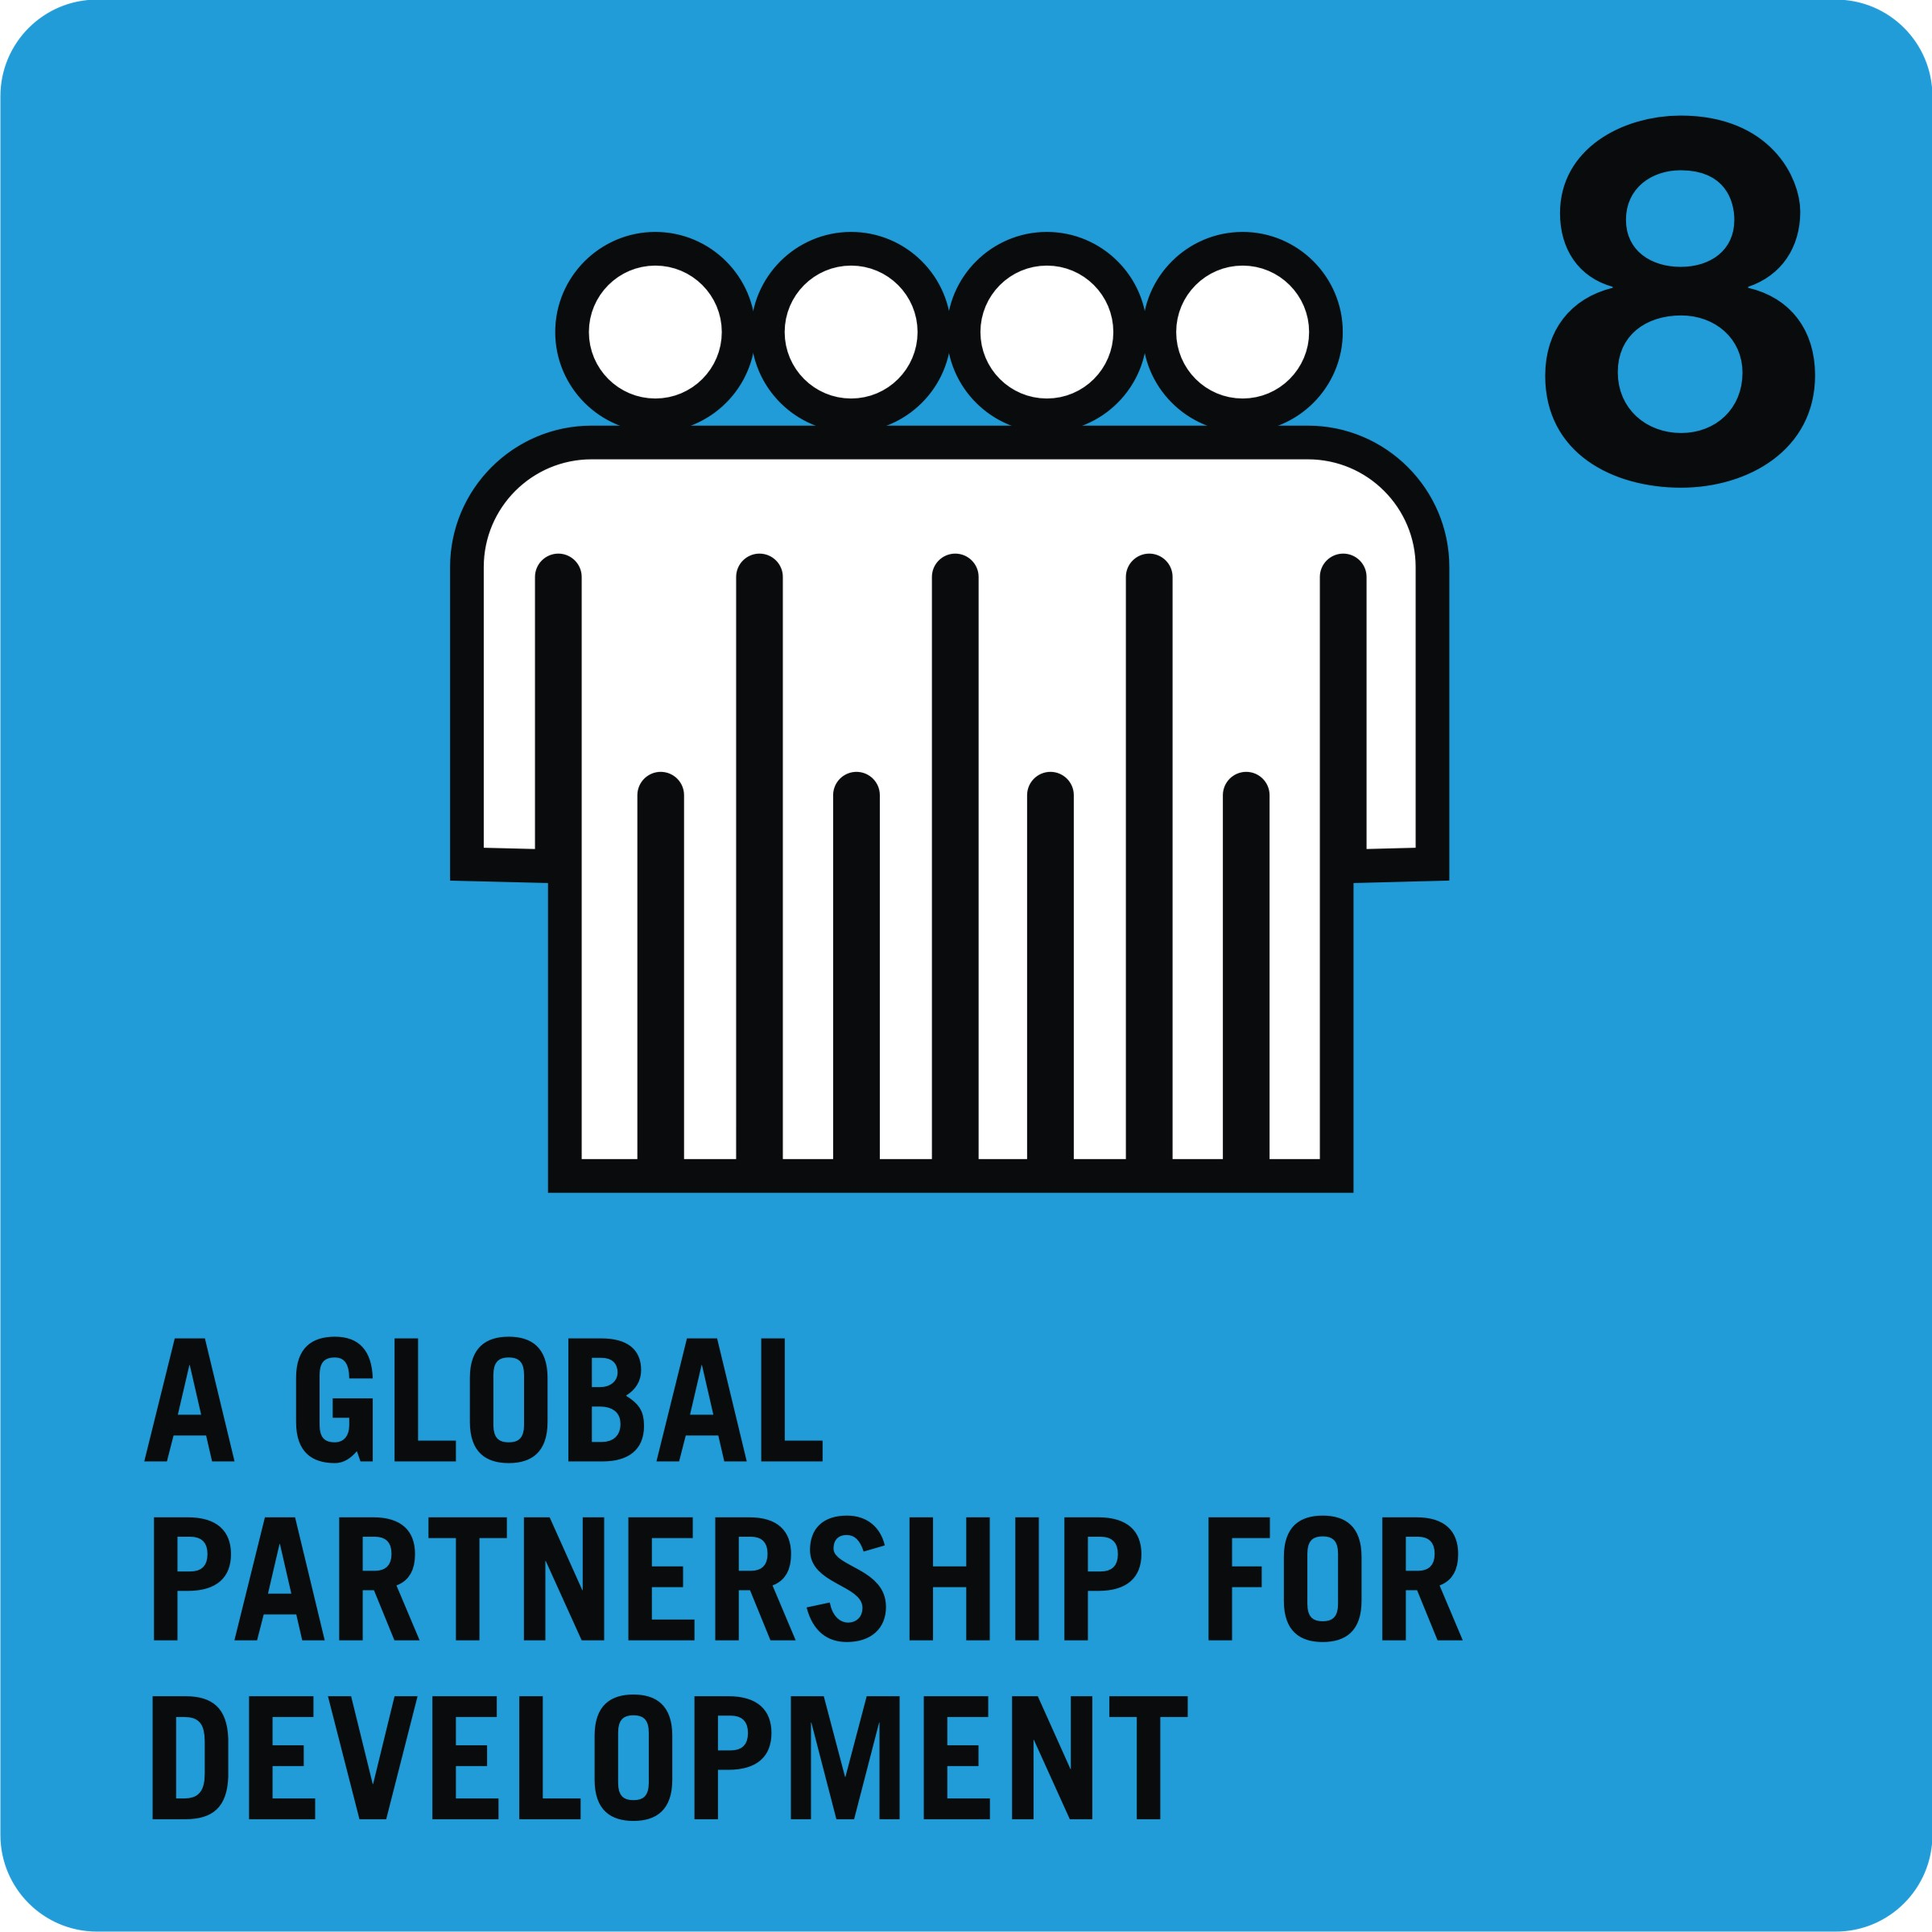 Mdg 8 Develop A Global Partnership For Development Mdg Monitor